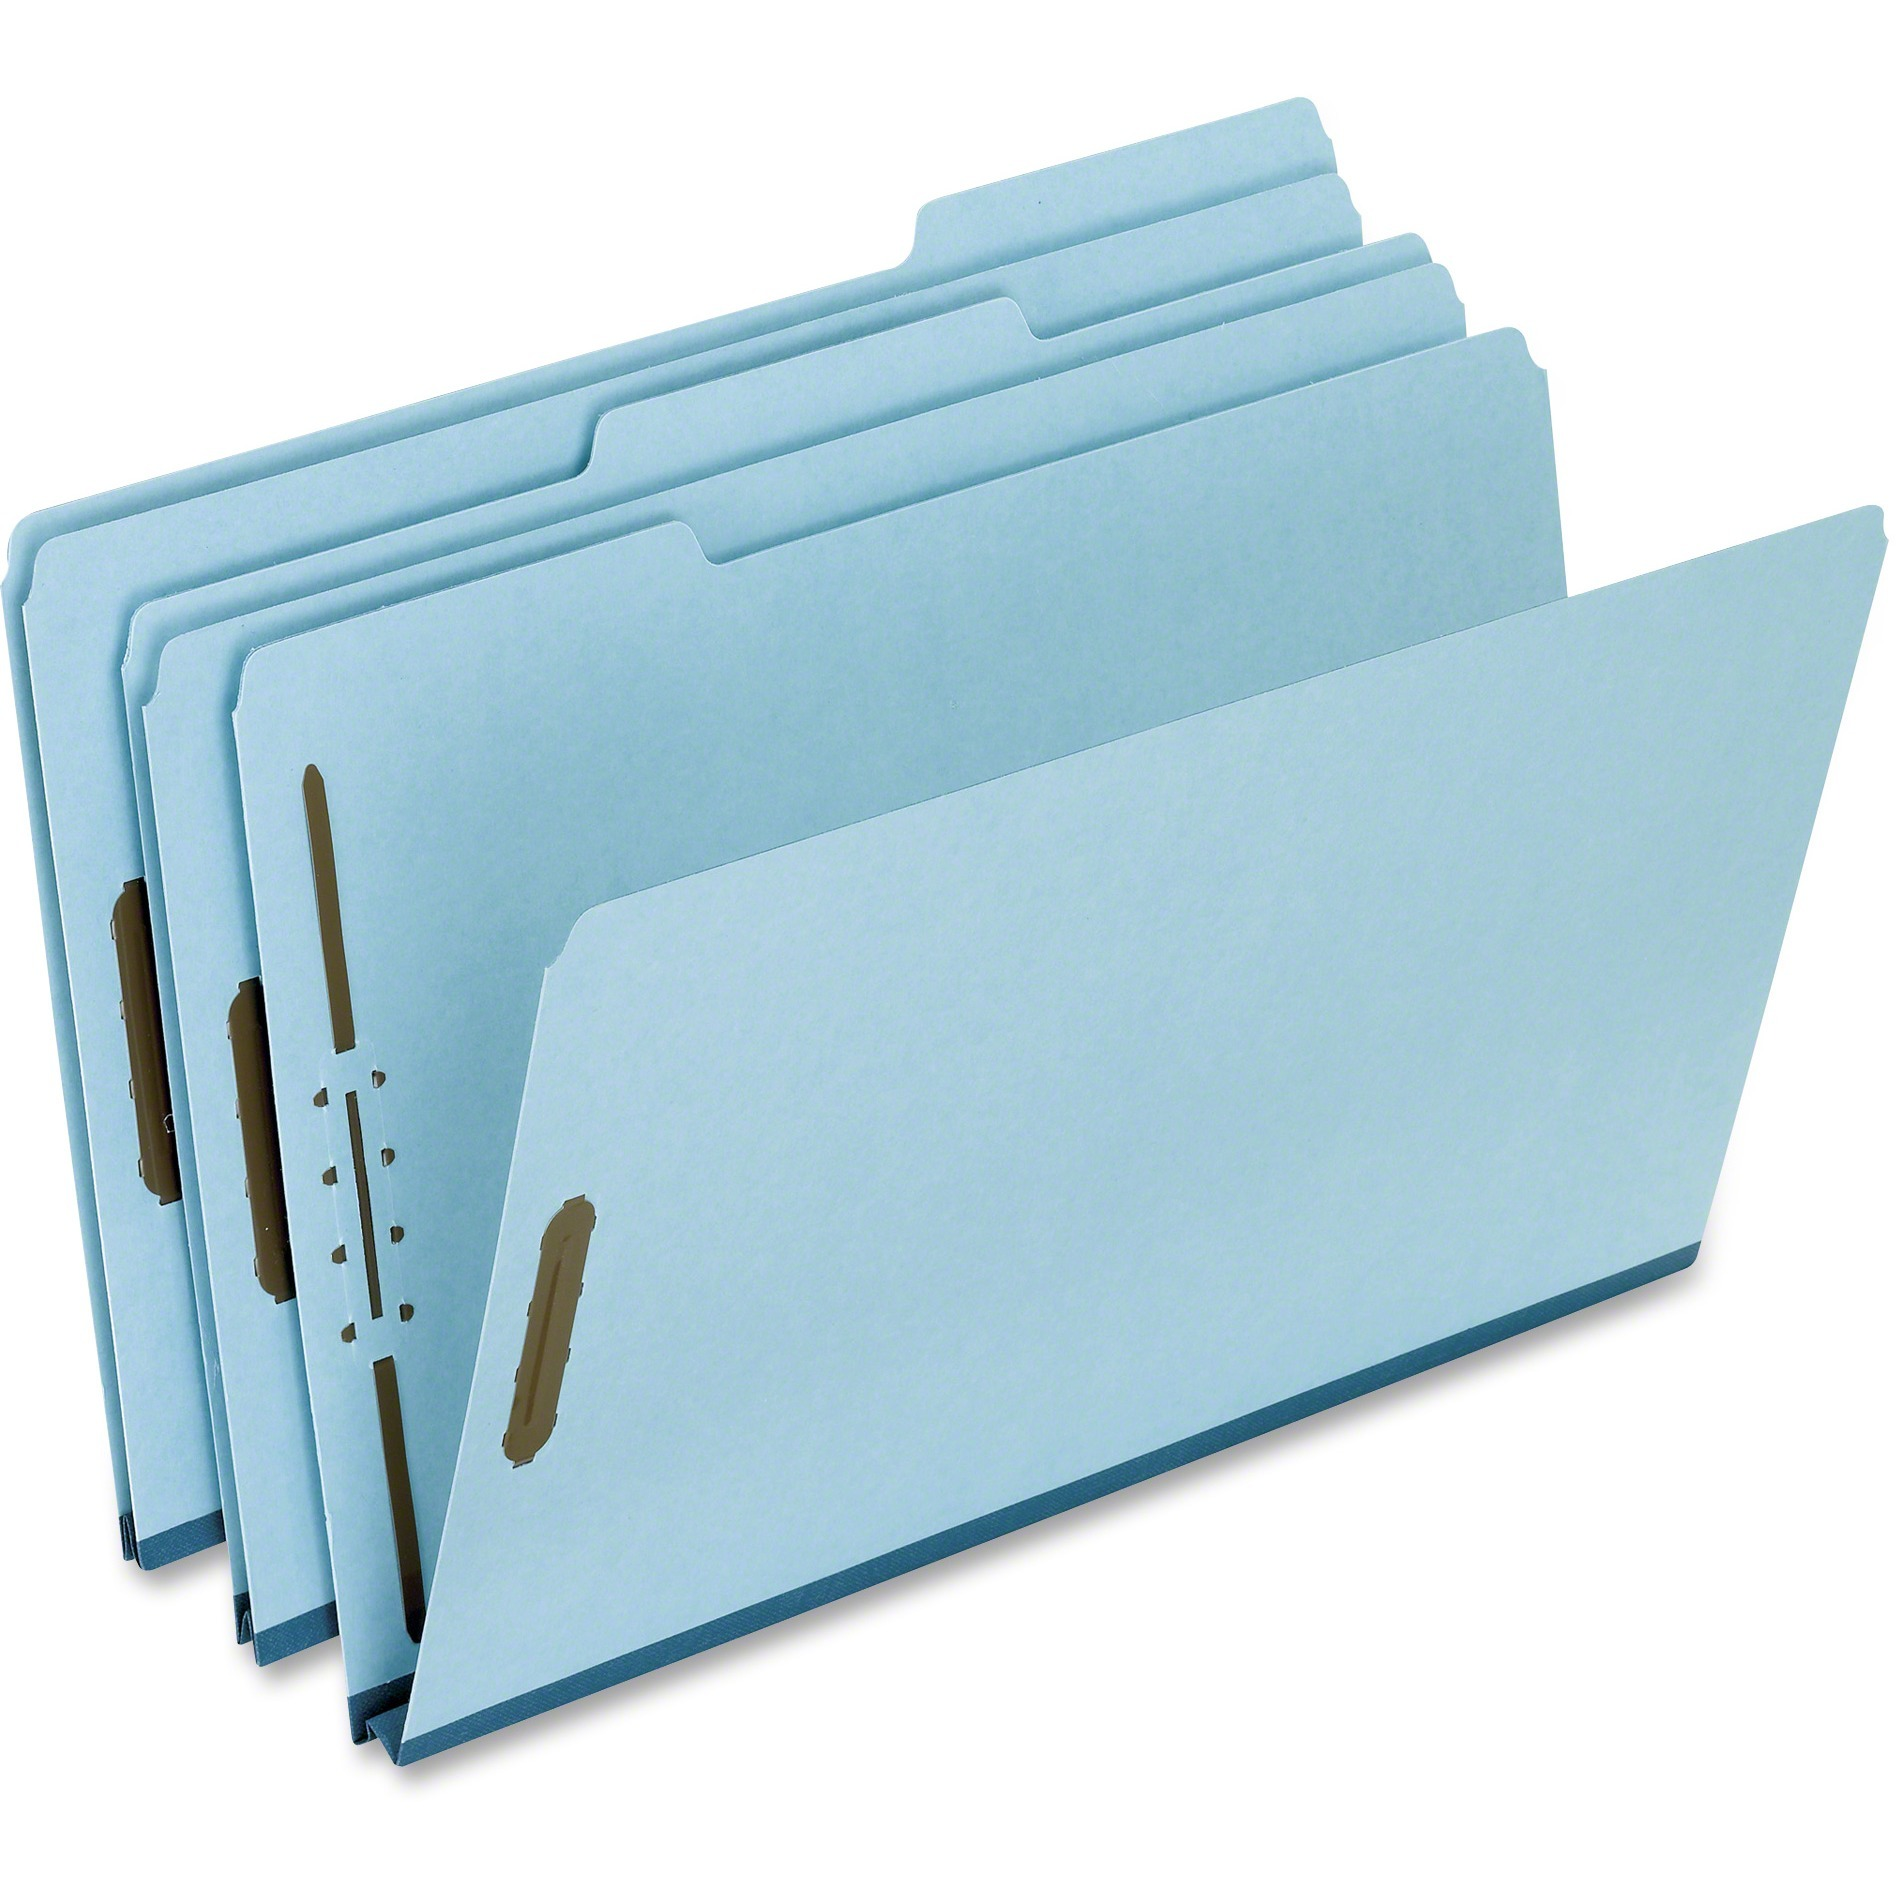 Pendaflex, PFXFP313, Pressboard Expansion Fastener Folders, 25 / Box, Blue